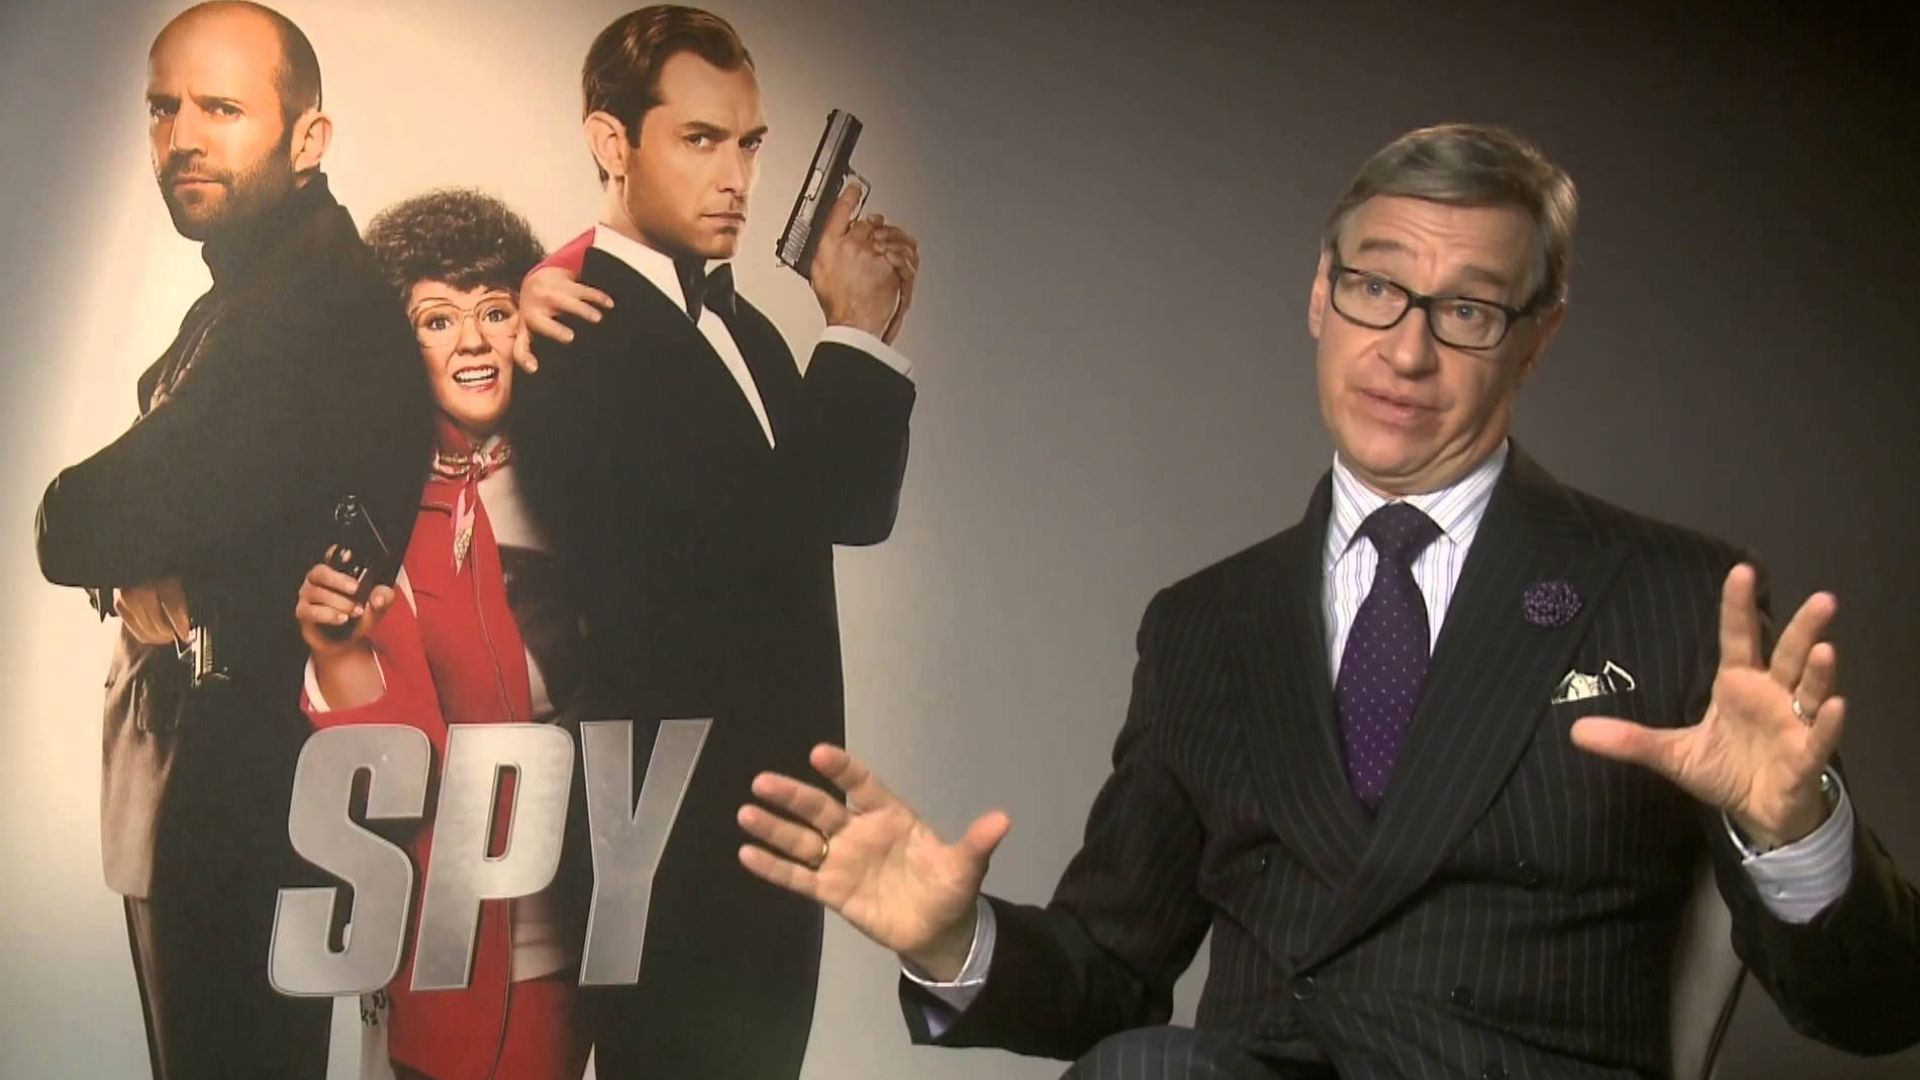 Paul Feig Talks About His Influences for 'Spy'